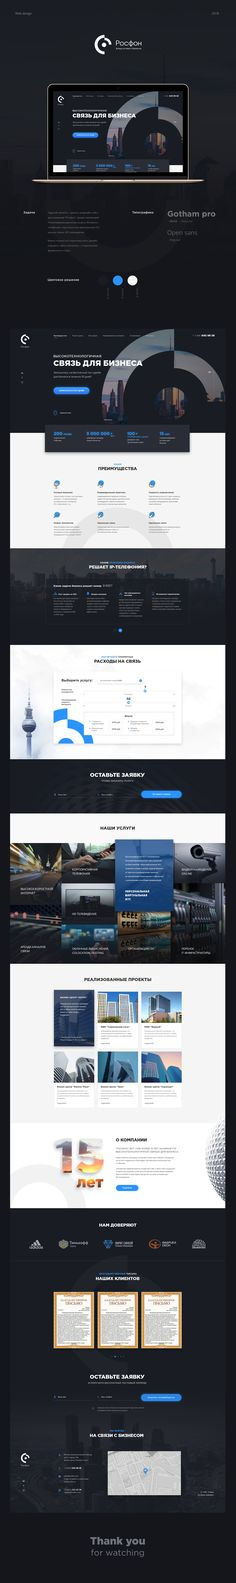 Rosfon website redesign on Behance